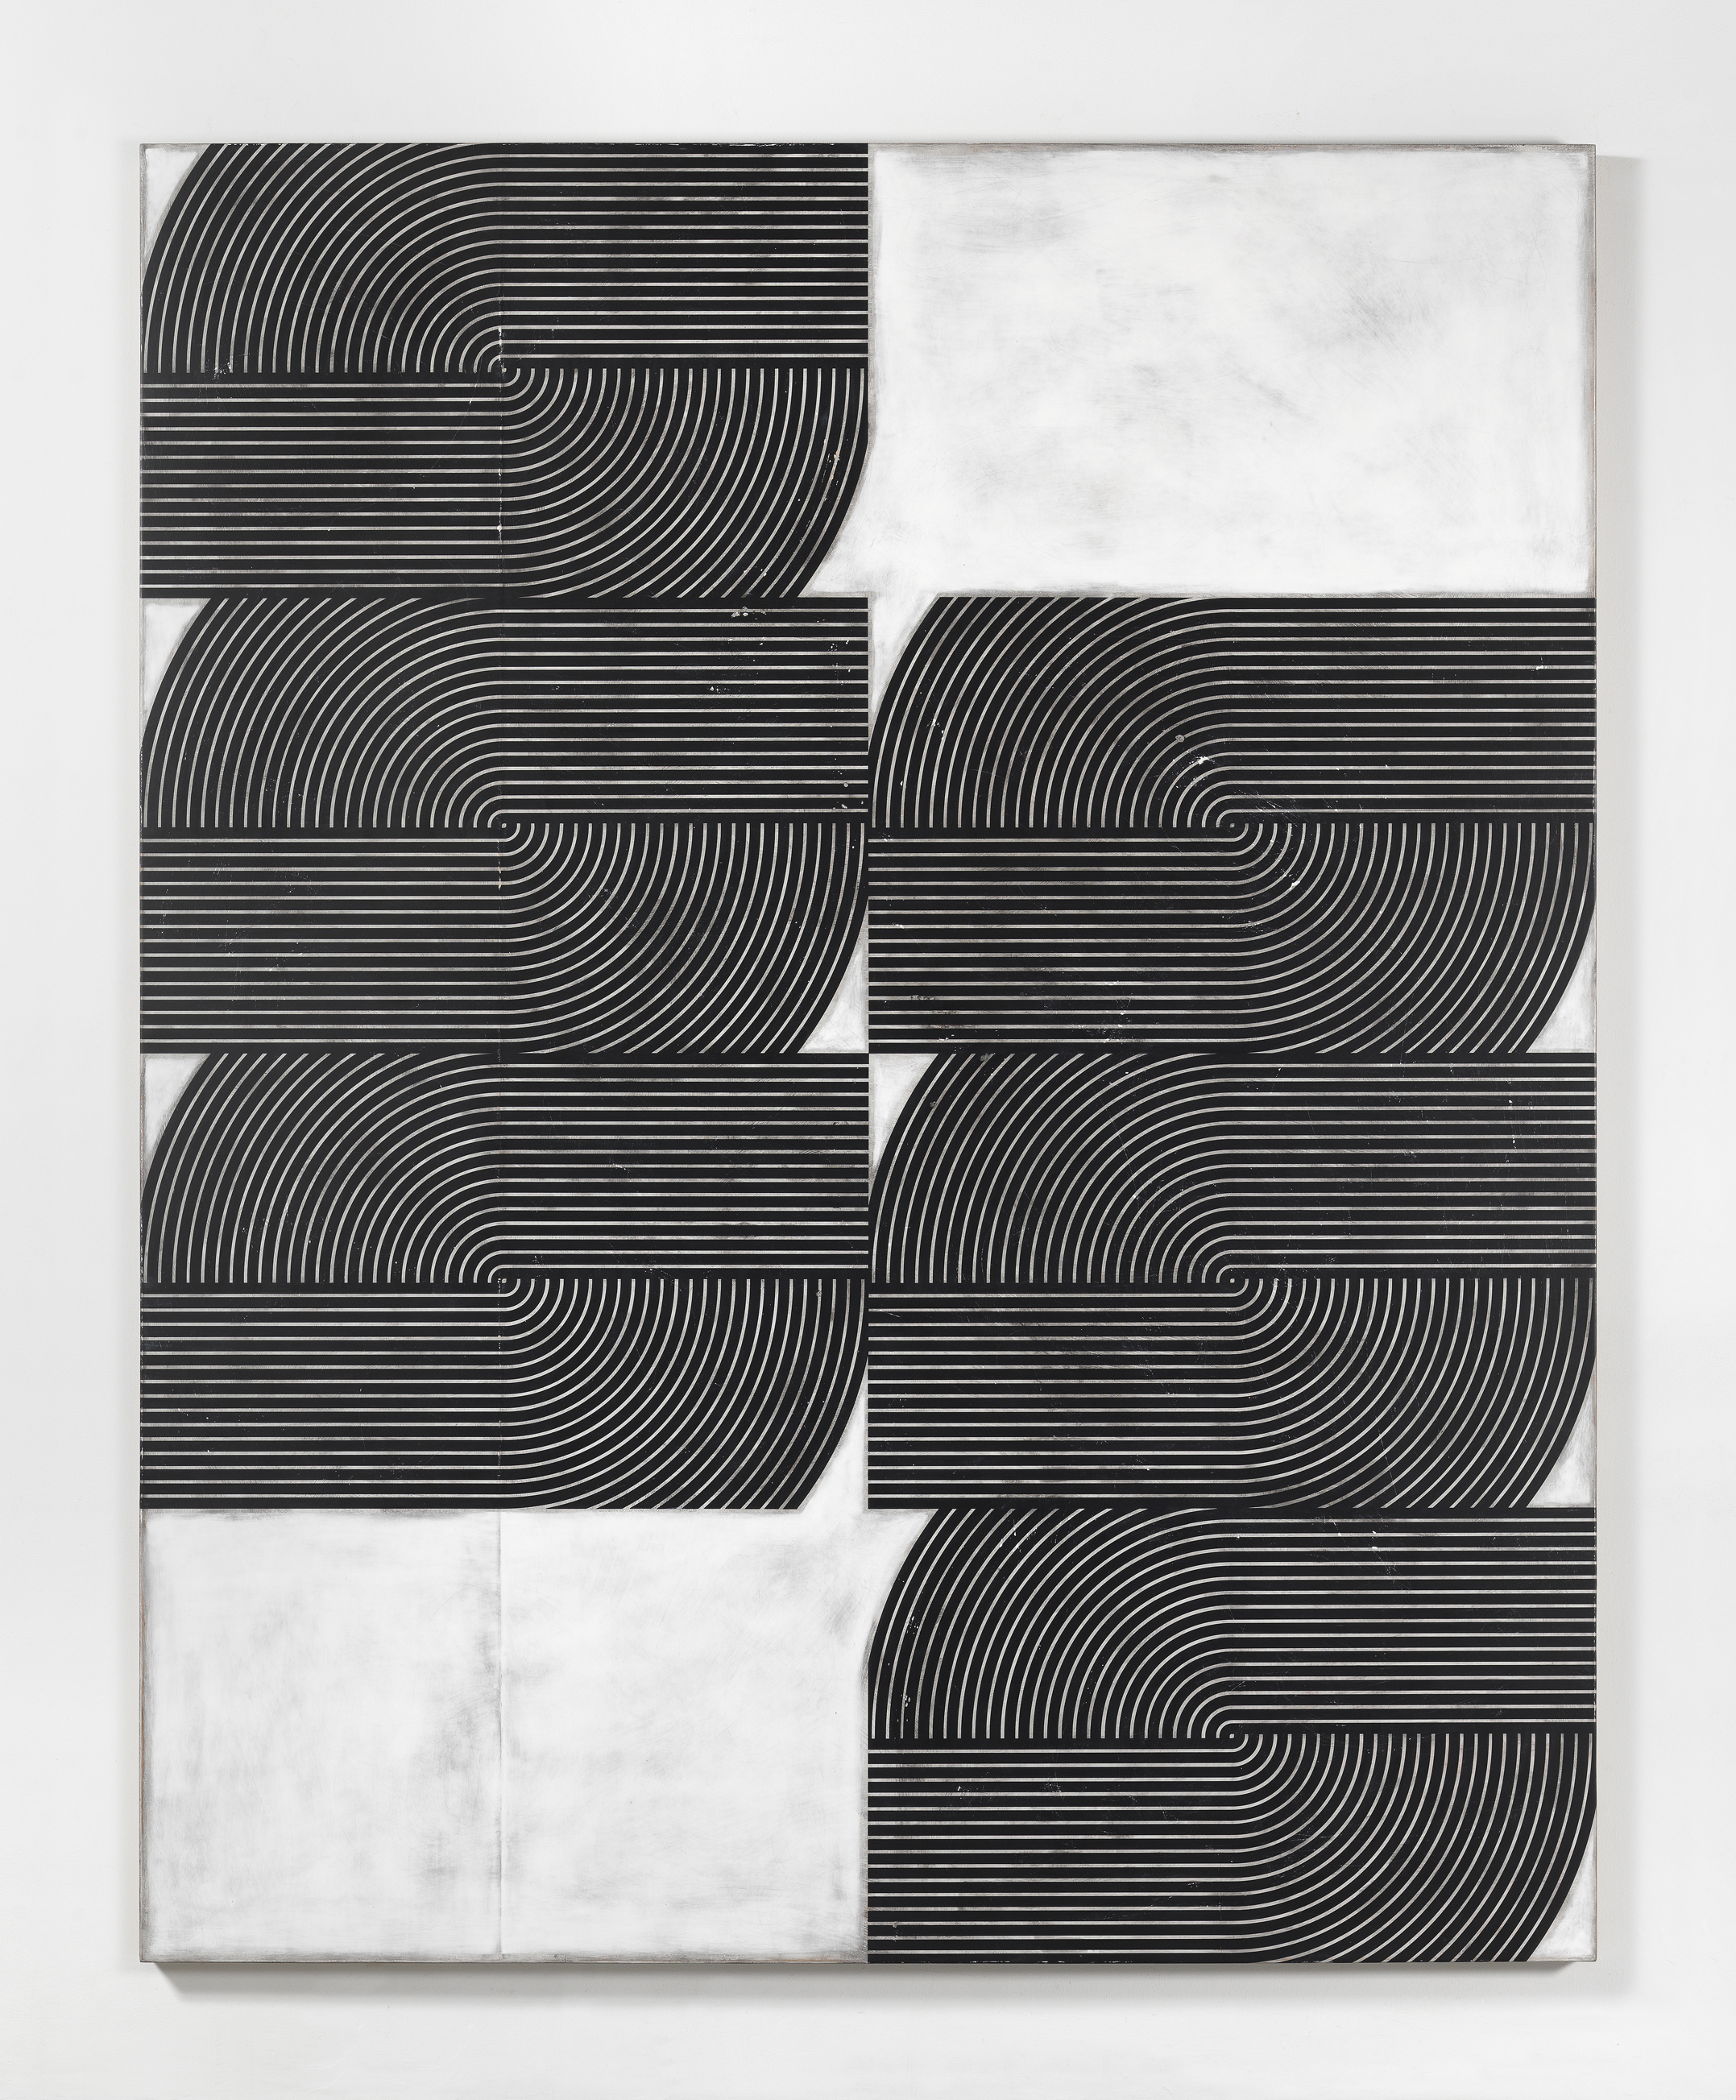 Davide Balliano, Untitled | 2017, Plaster, gesso and lacquer on wood, 203.2 x 162.5 cm